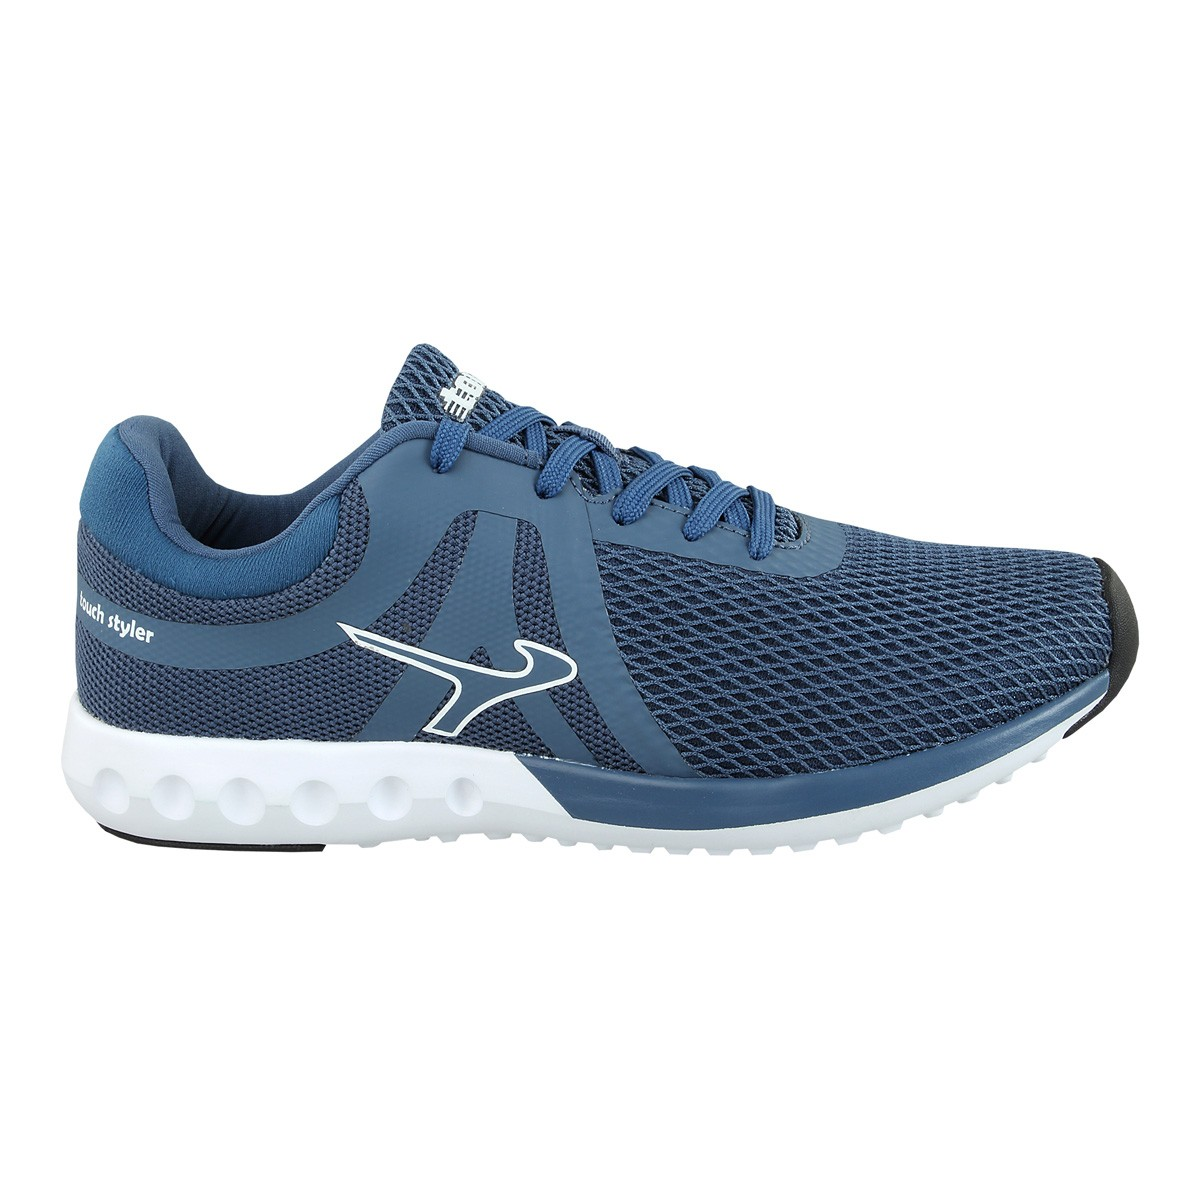 Touch-956-S Blue/White